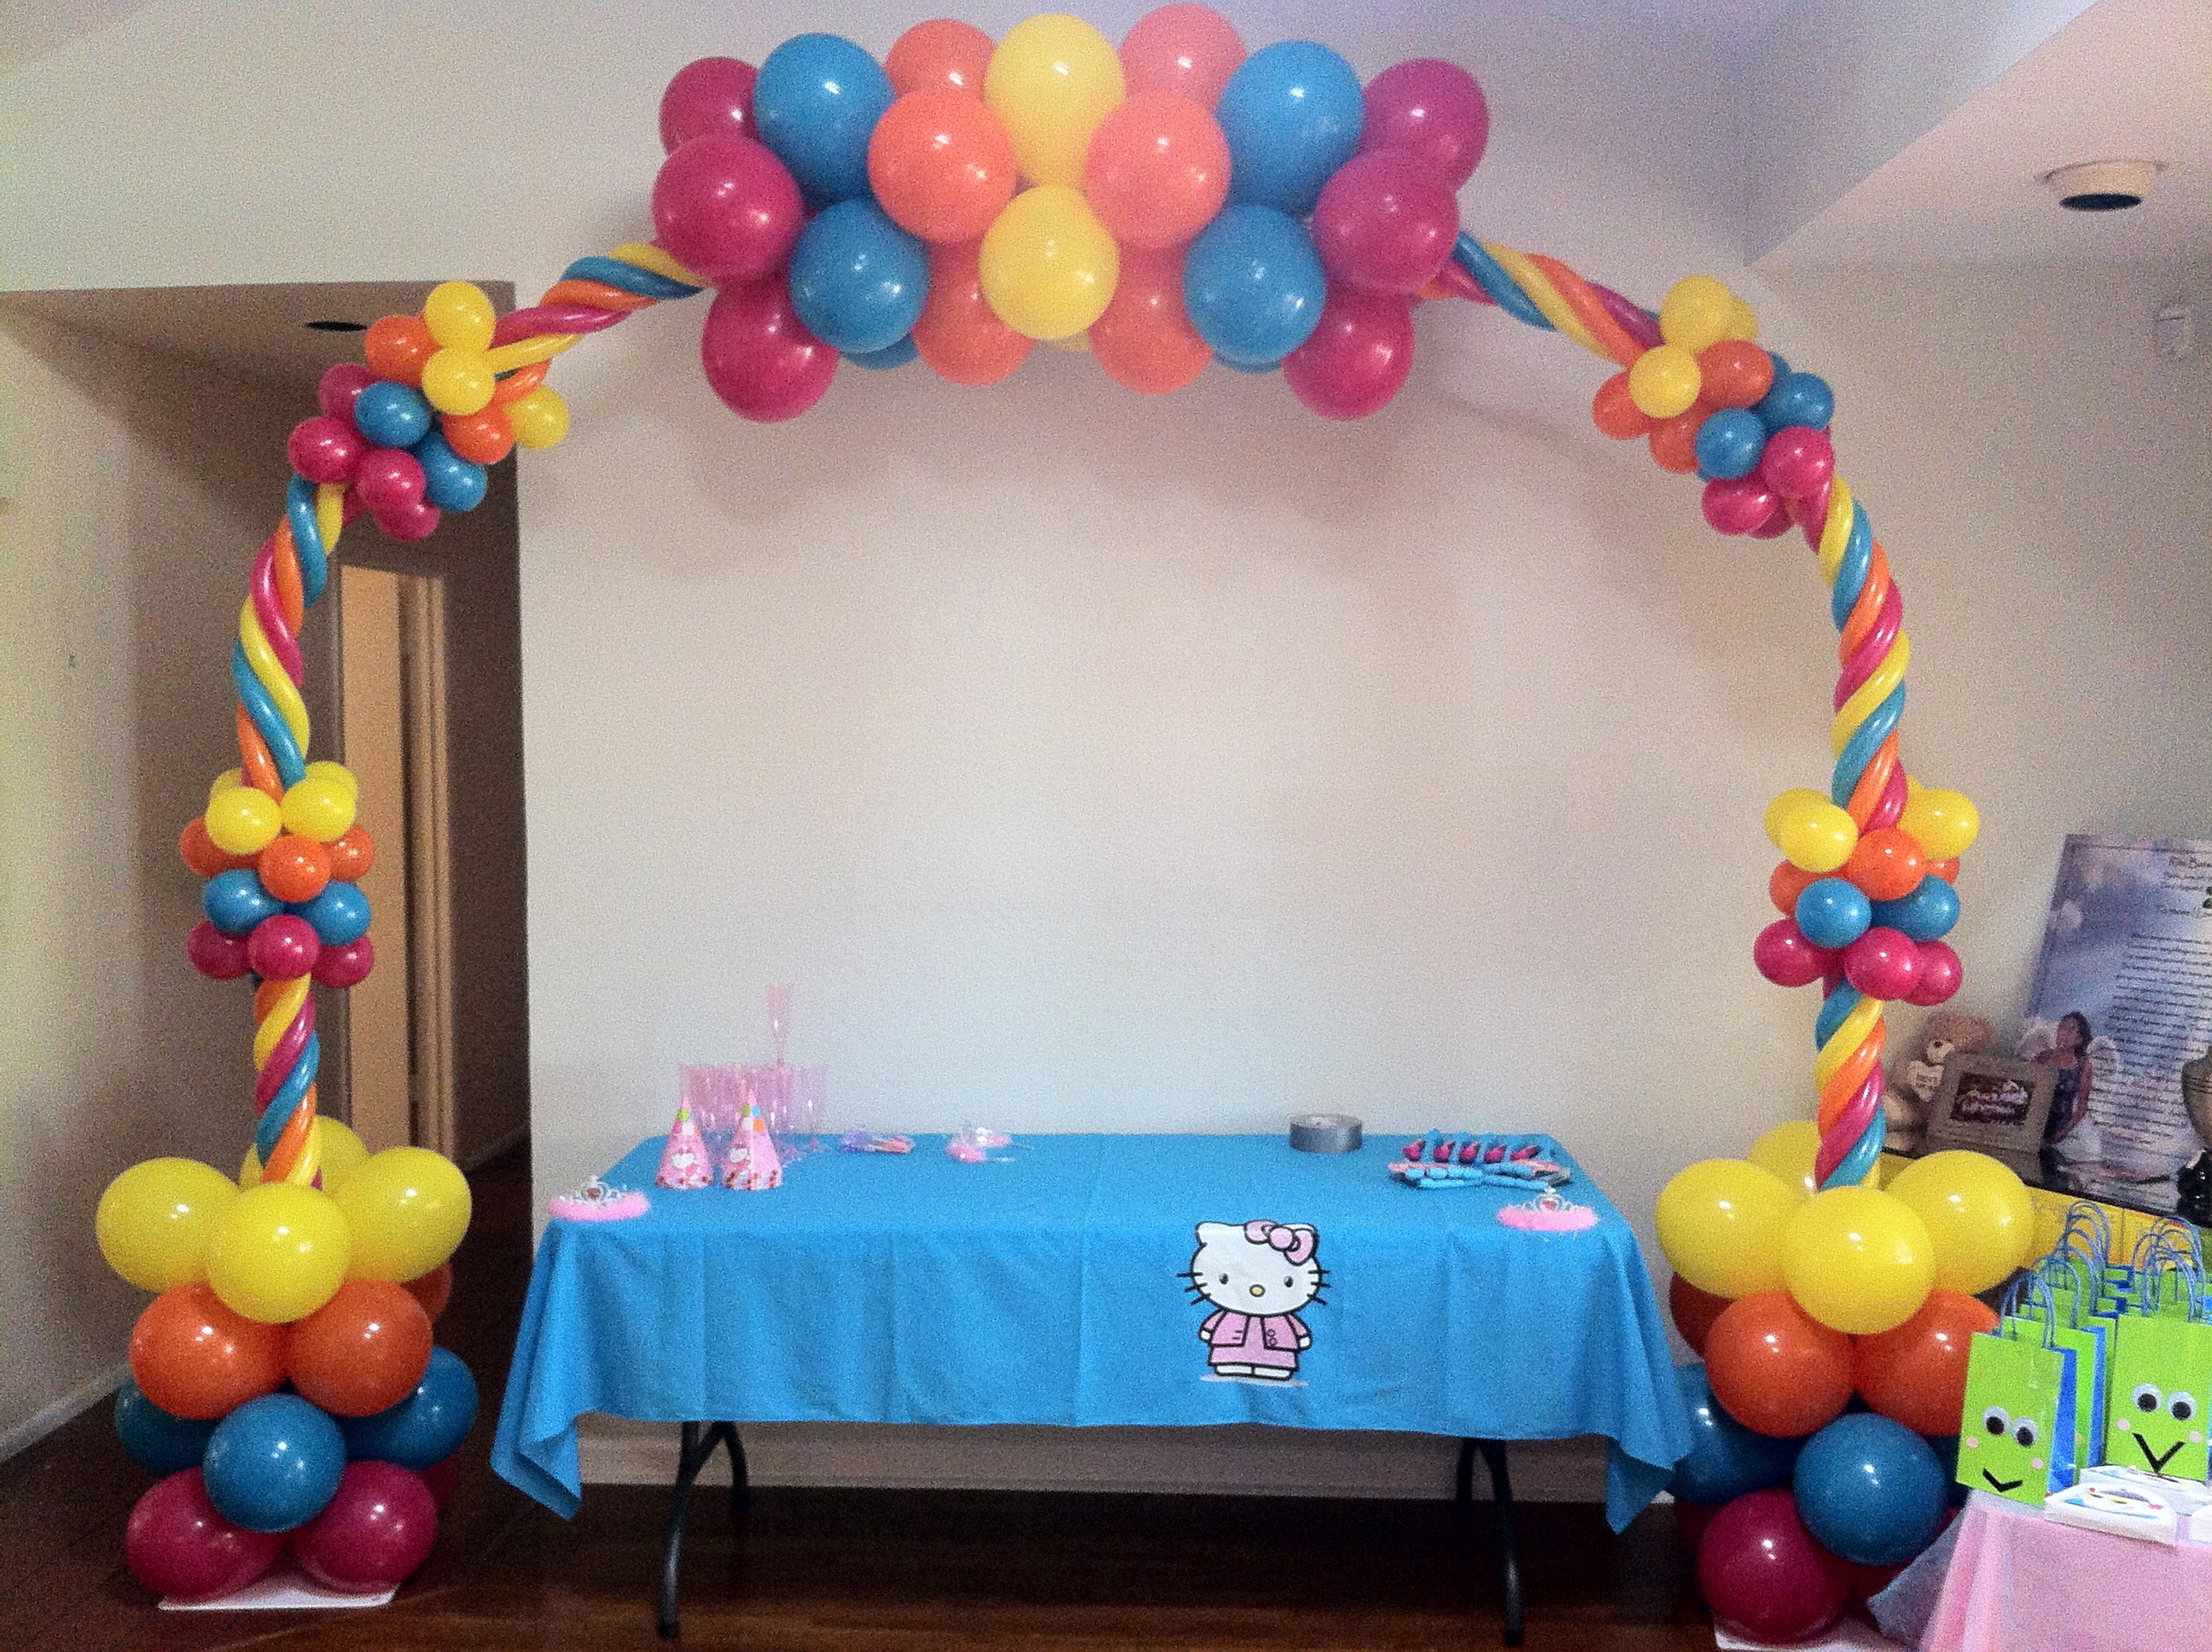 Balloon Arches - Trade Shows and Corporate/Company events